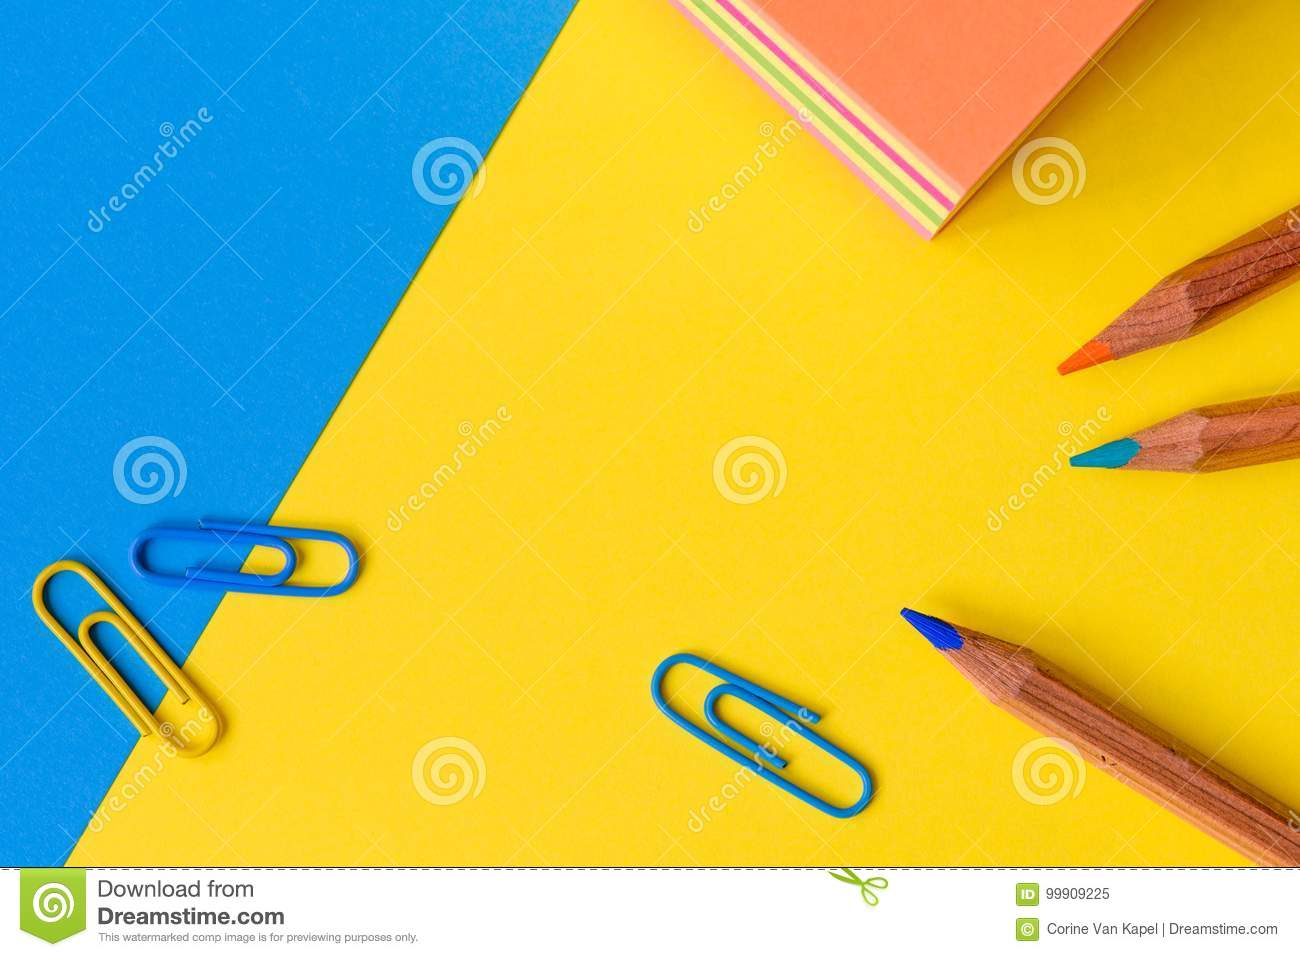 Paperclips, pencils and a memo block isolated against a blue and